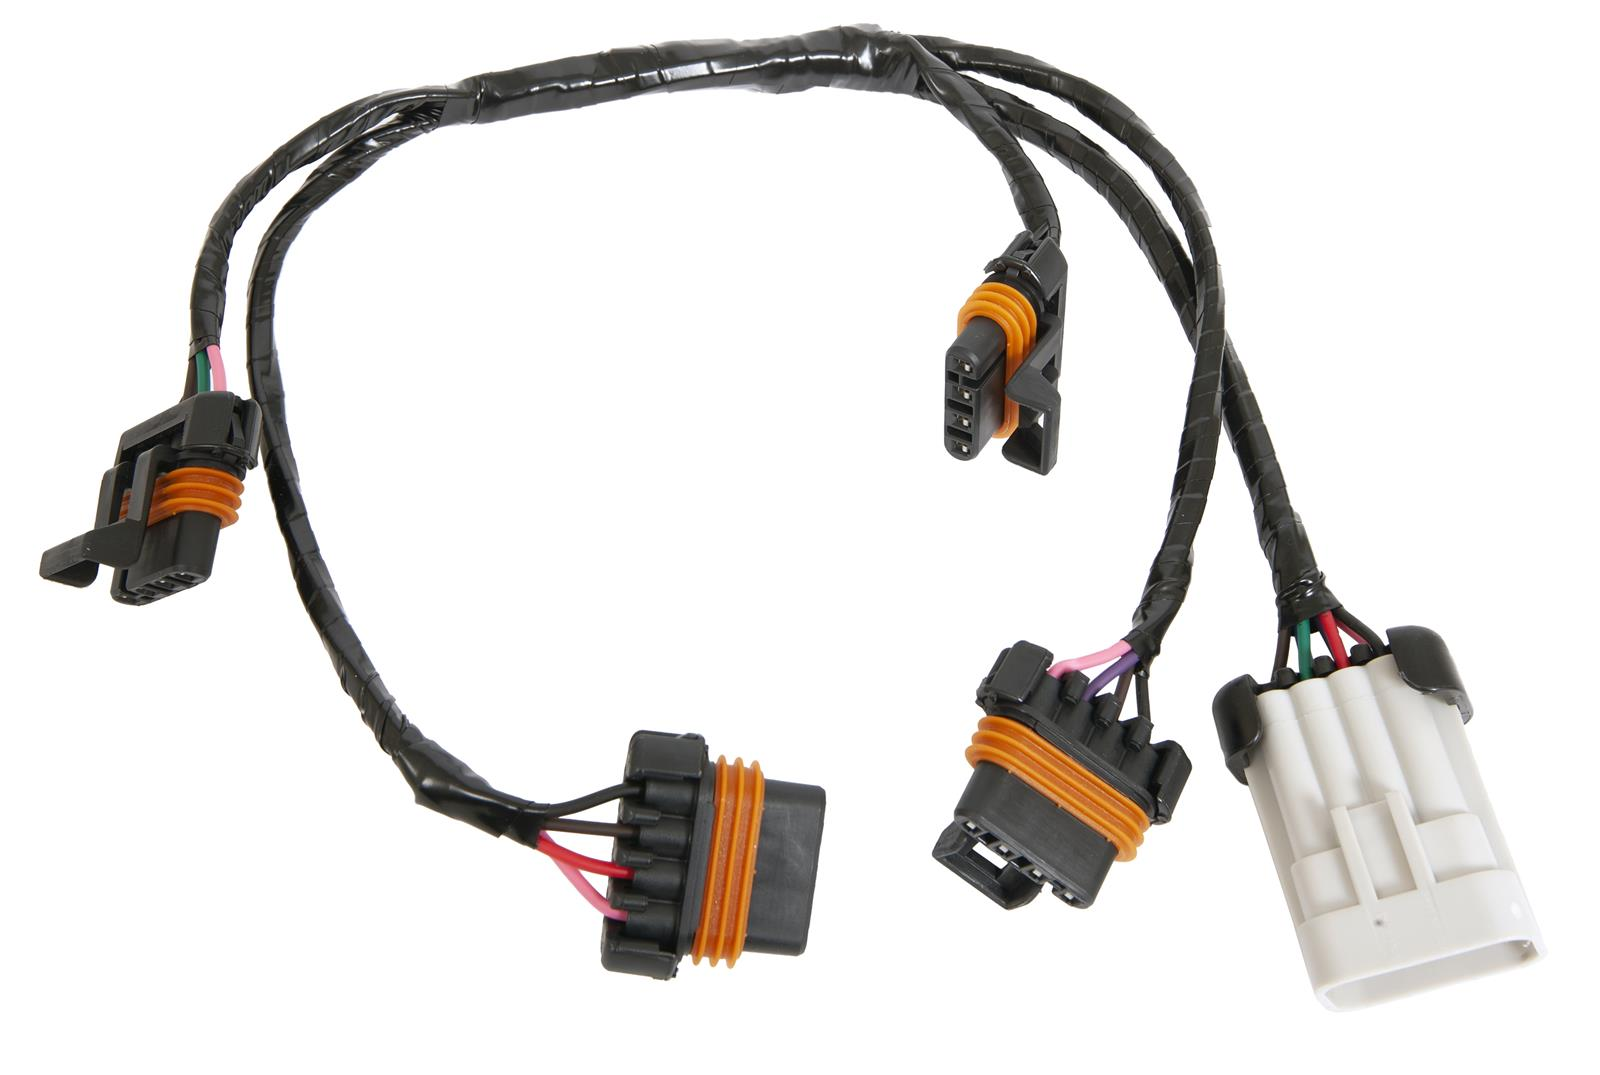 hight resolution of summit racing ignition coil wiring harnesses sum 890107 free shipping on orders over 99 at summit racing